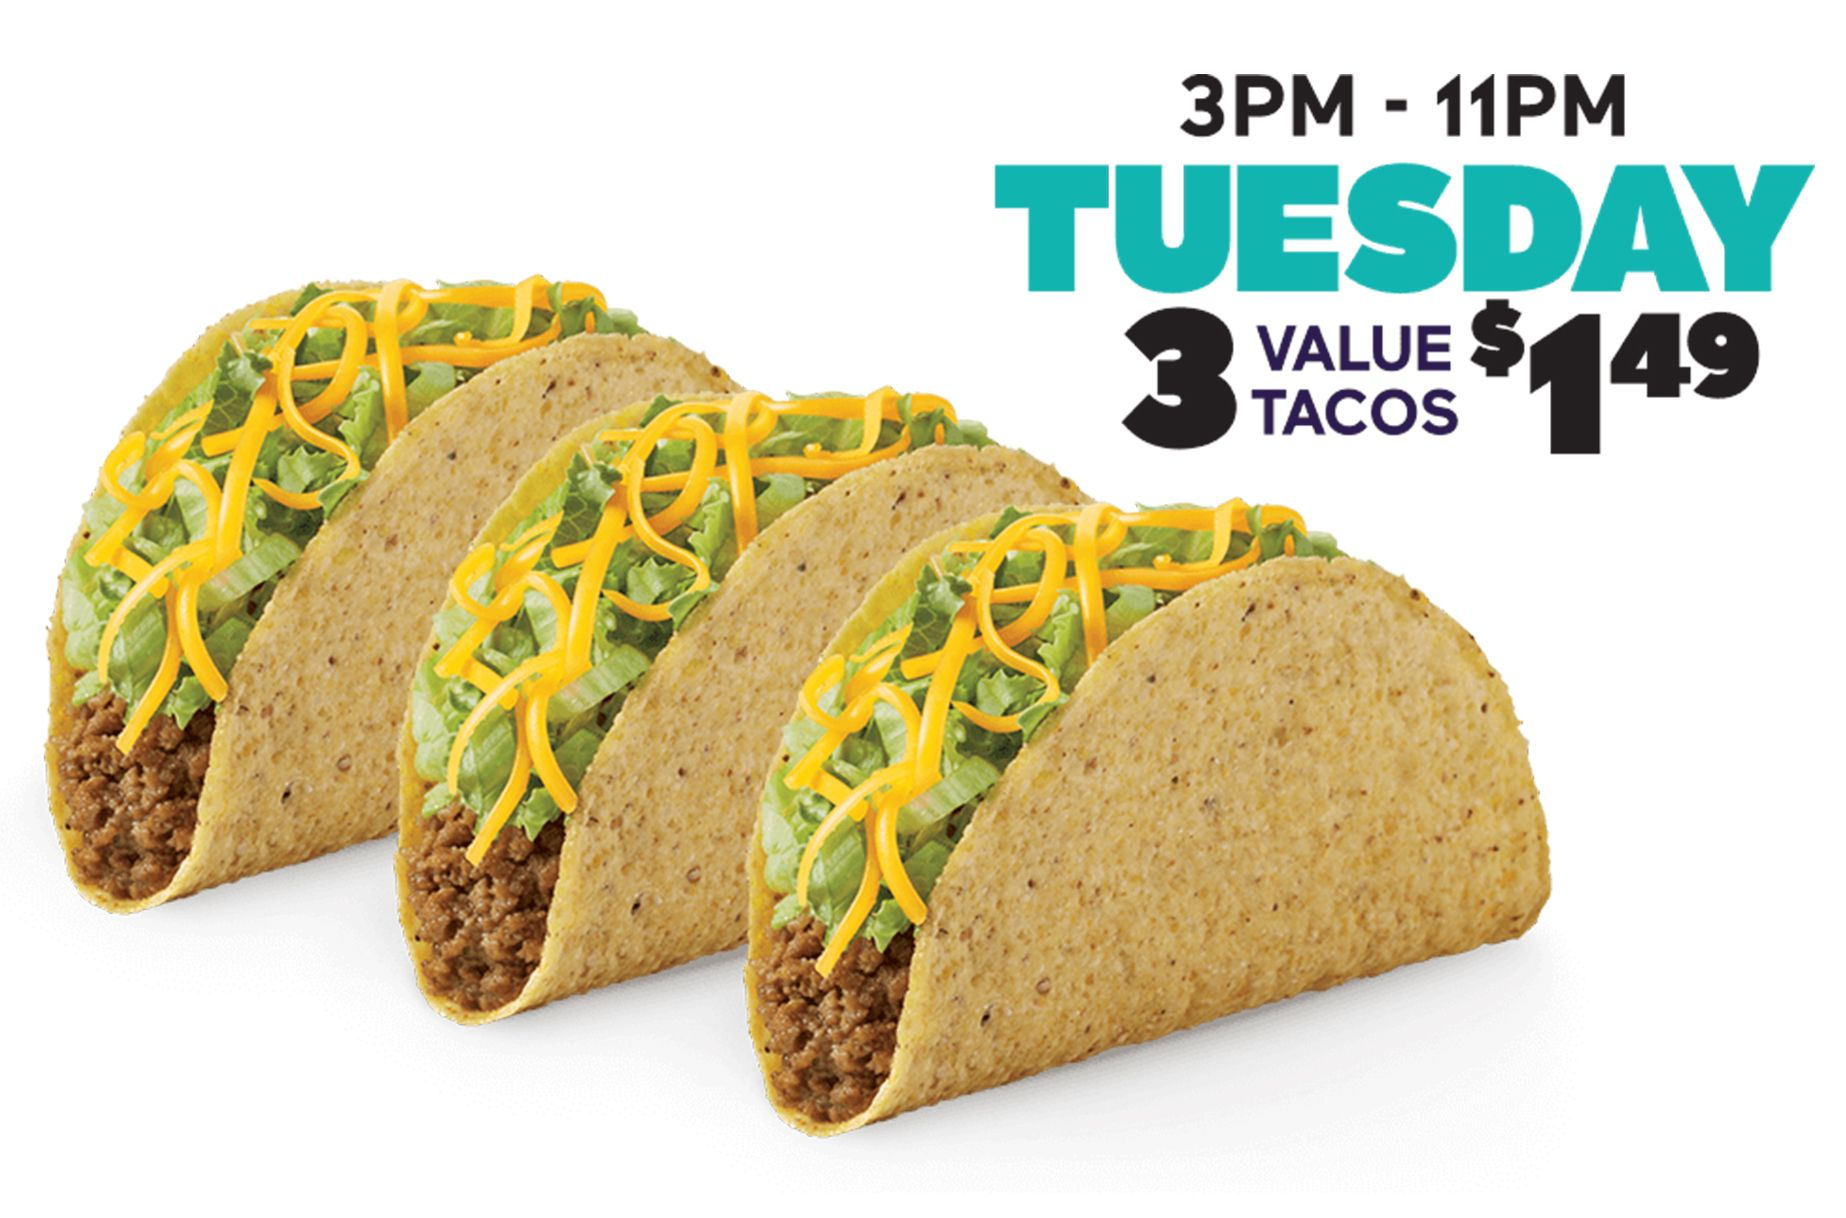 Every Tuesday from 3 to 11 pm Get 3 Value Tacos for $1.49 at Participating Del Taco Restaurants